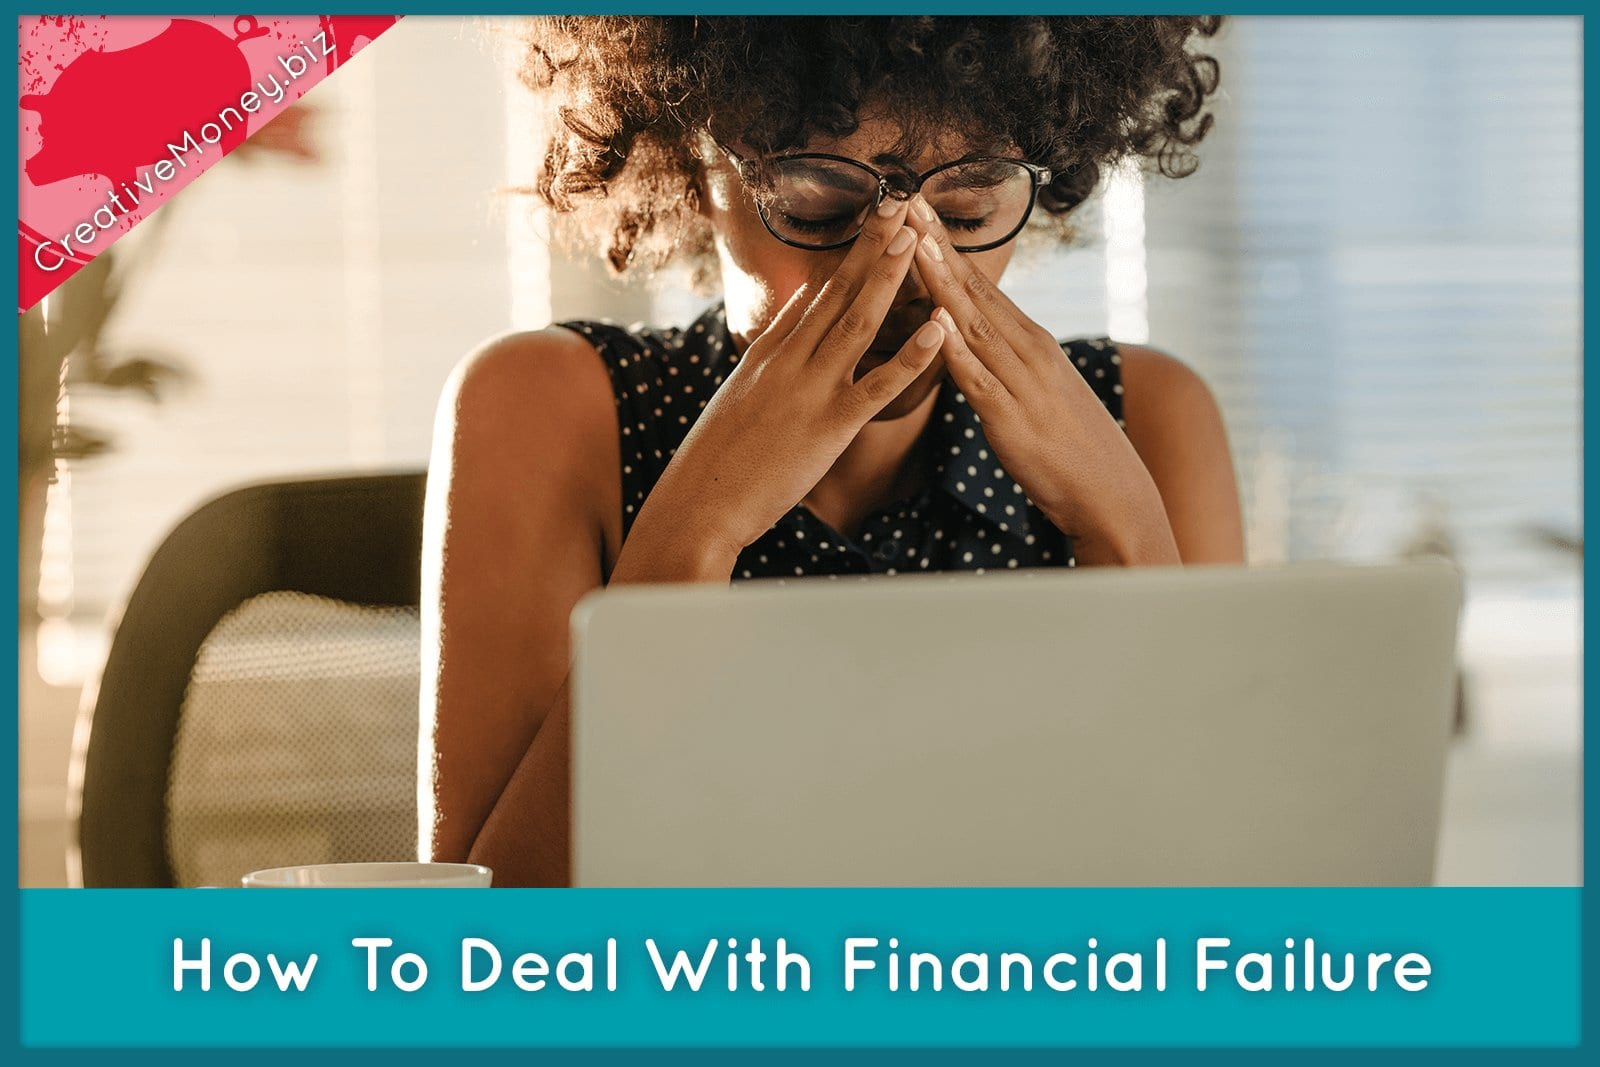 How to deal with financial failure